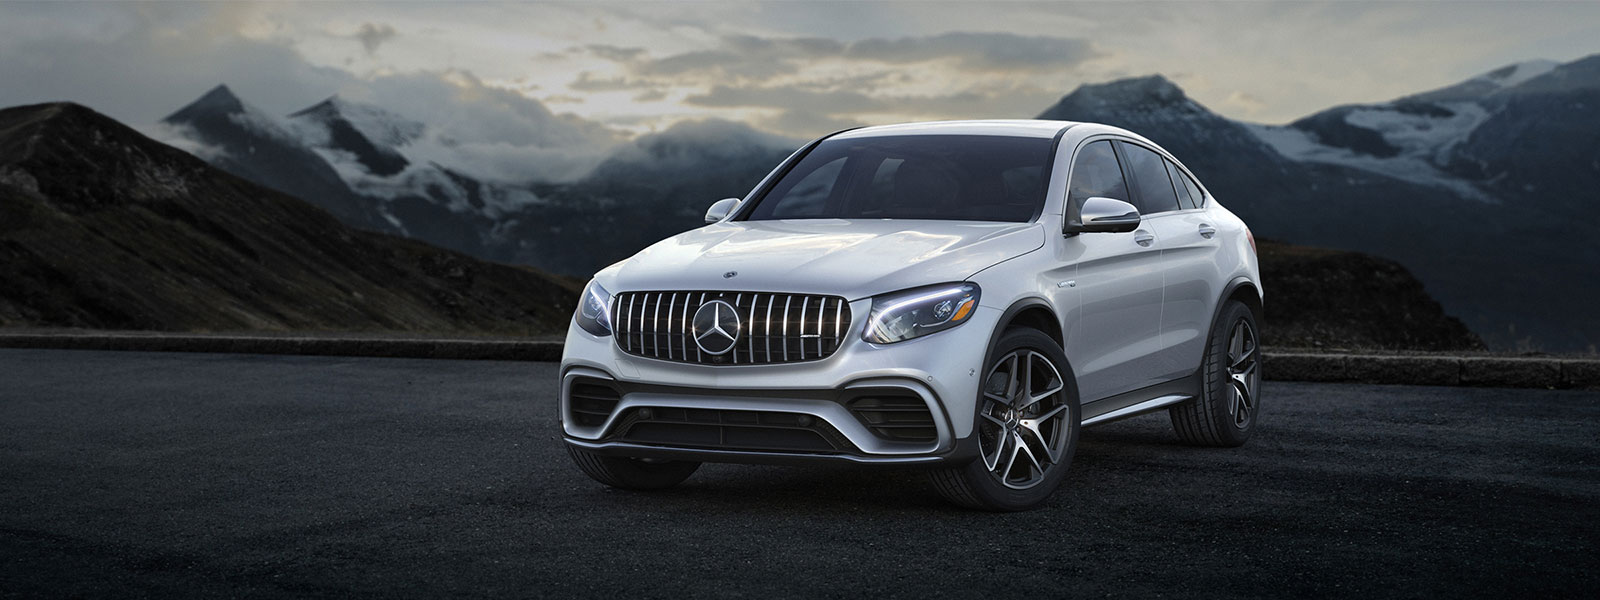 2018 Glc Amg Coupe Cl Hero Ch1 D